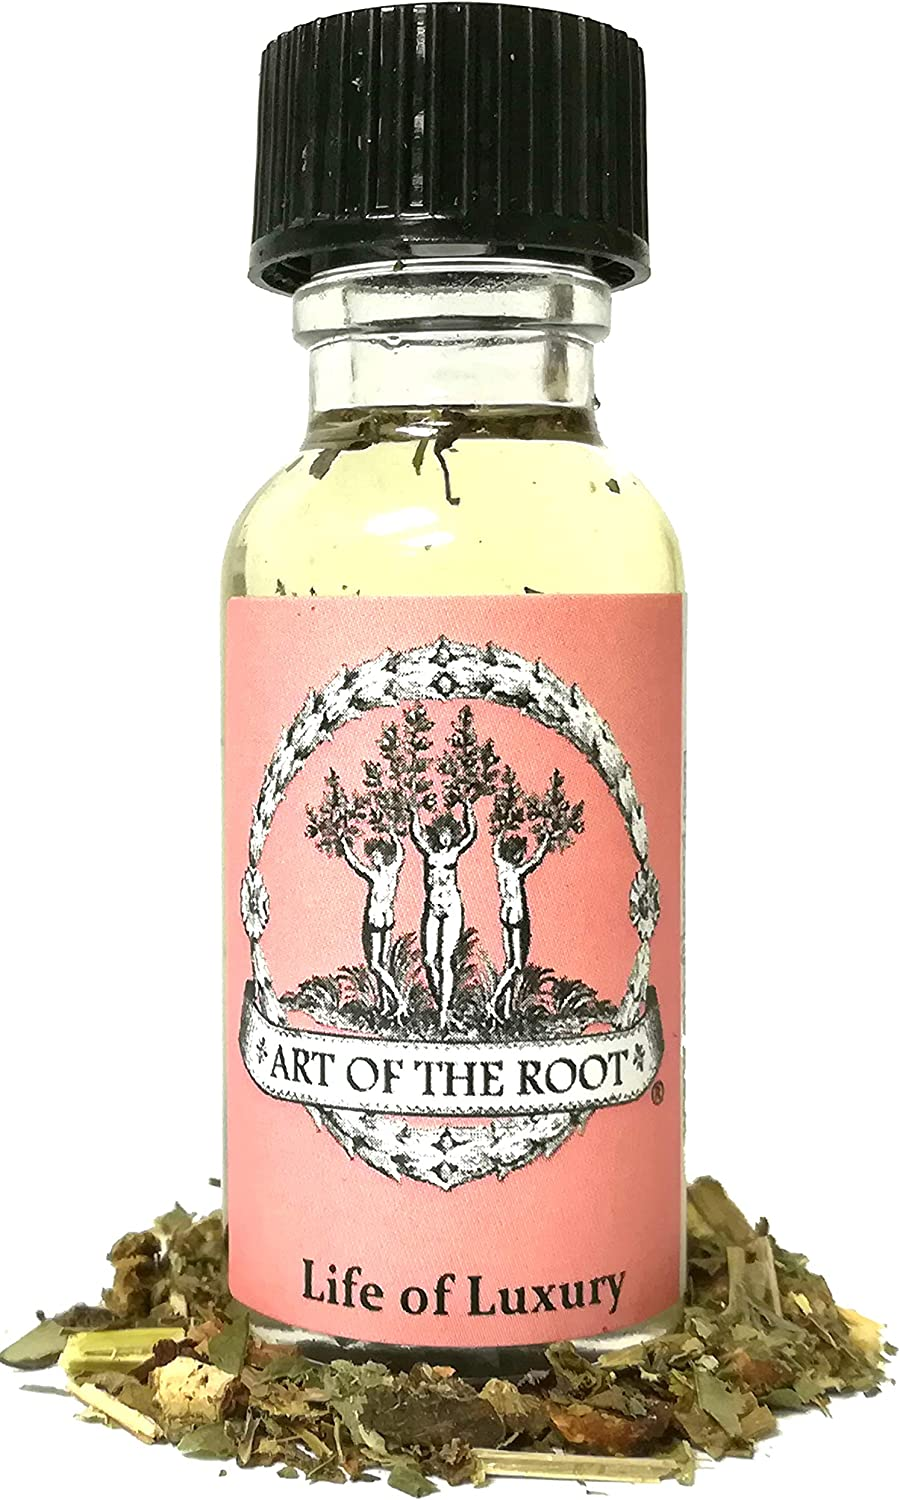 Life of Luxury Oil for Wealth, Riches New Ventures, Business Growth & Financial Prosperity Hoodoo Voodoo Wiccan Pagan Magick